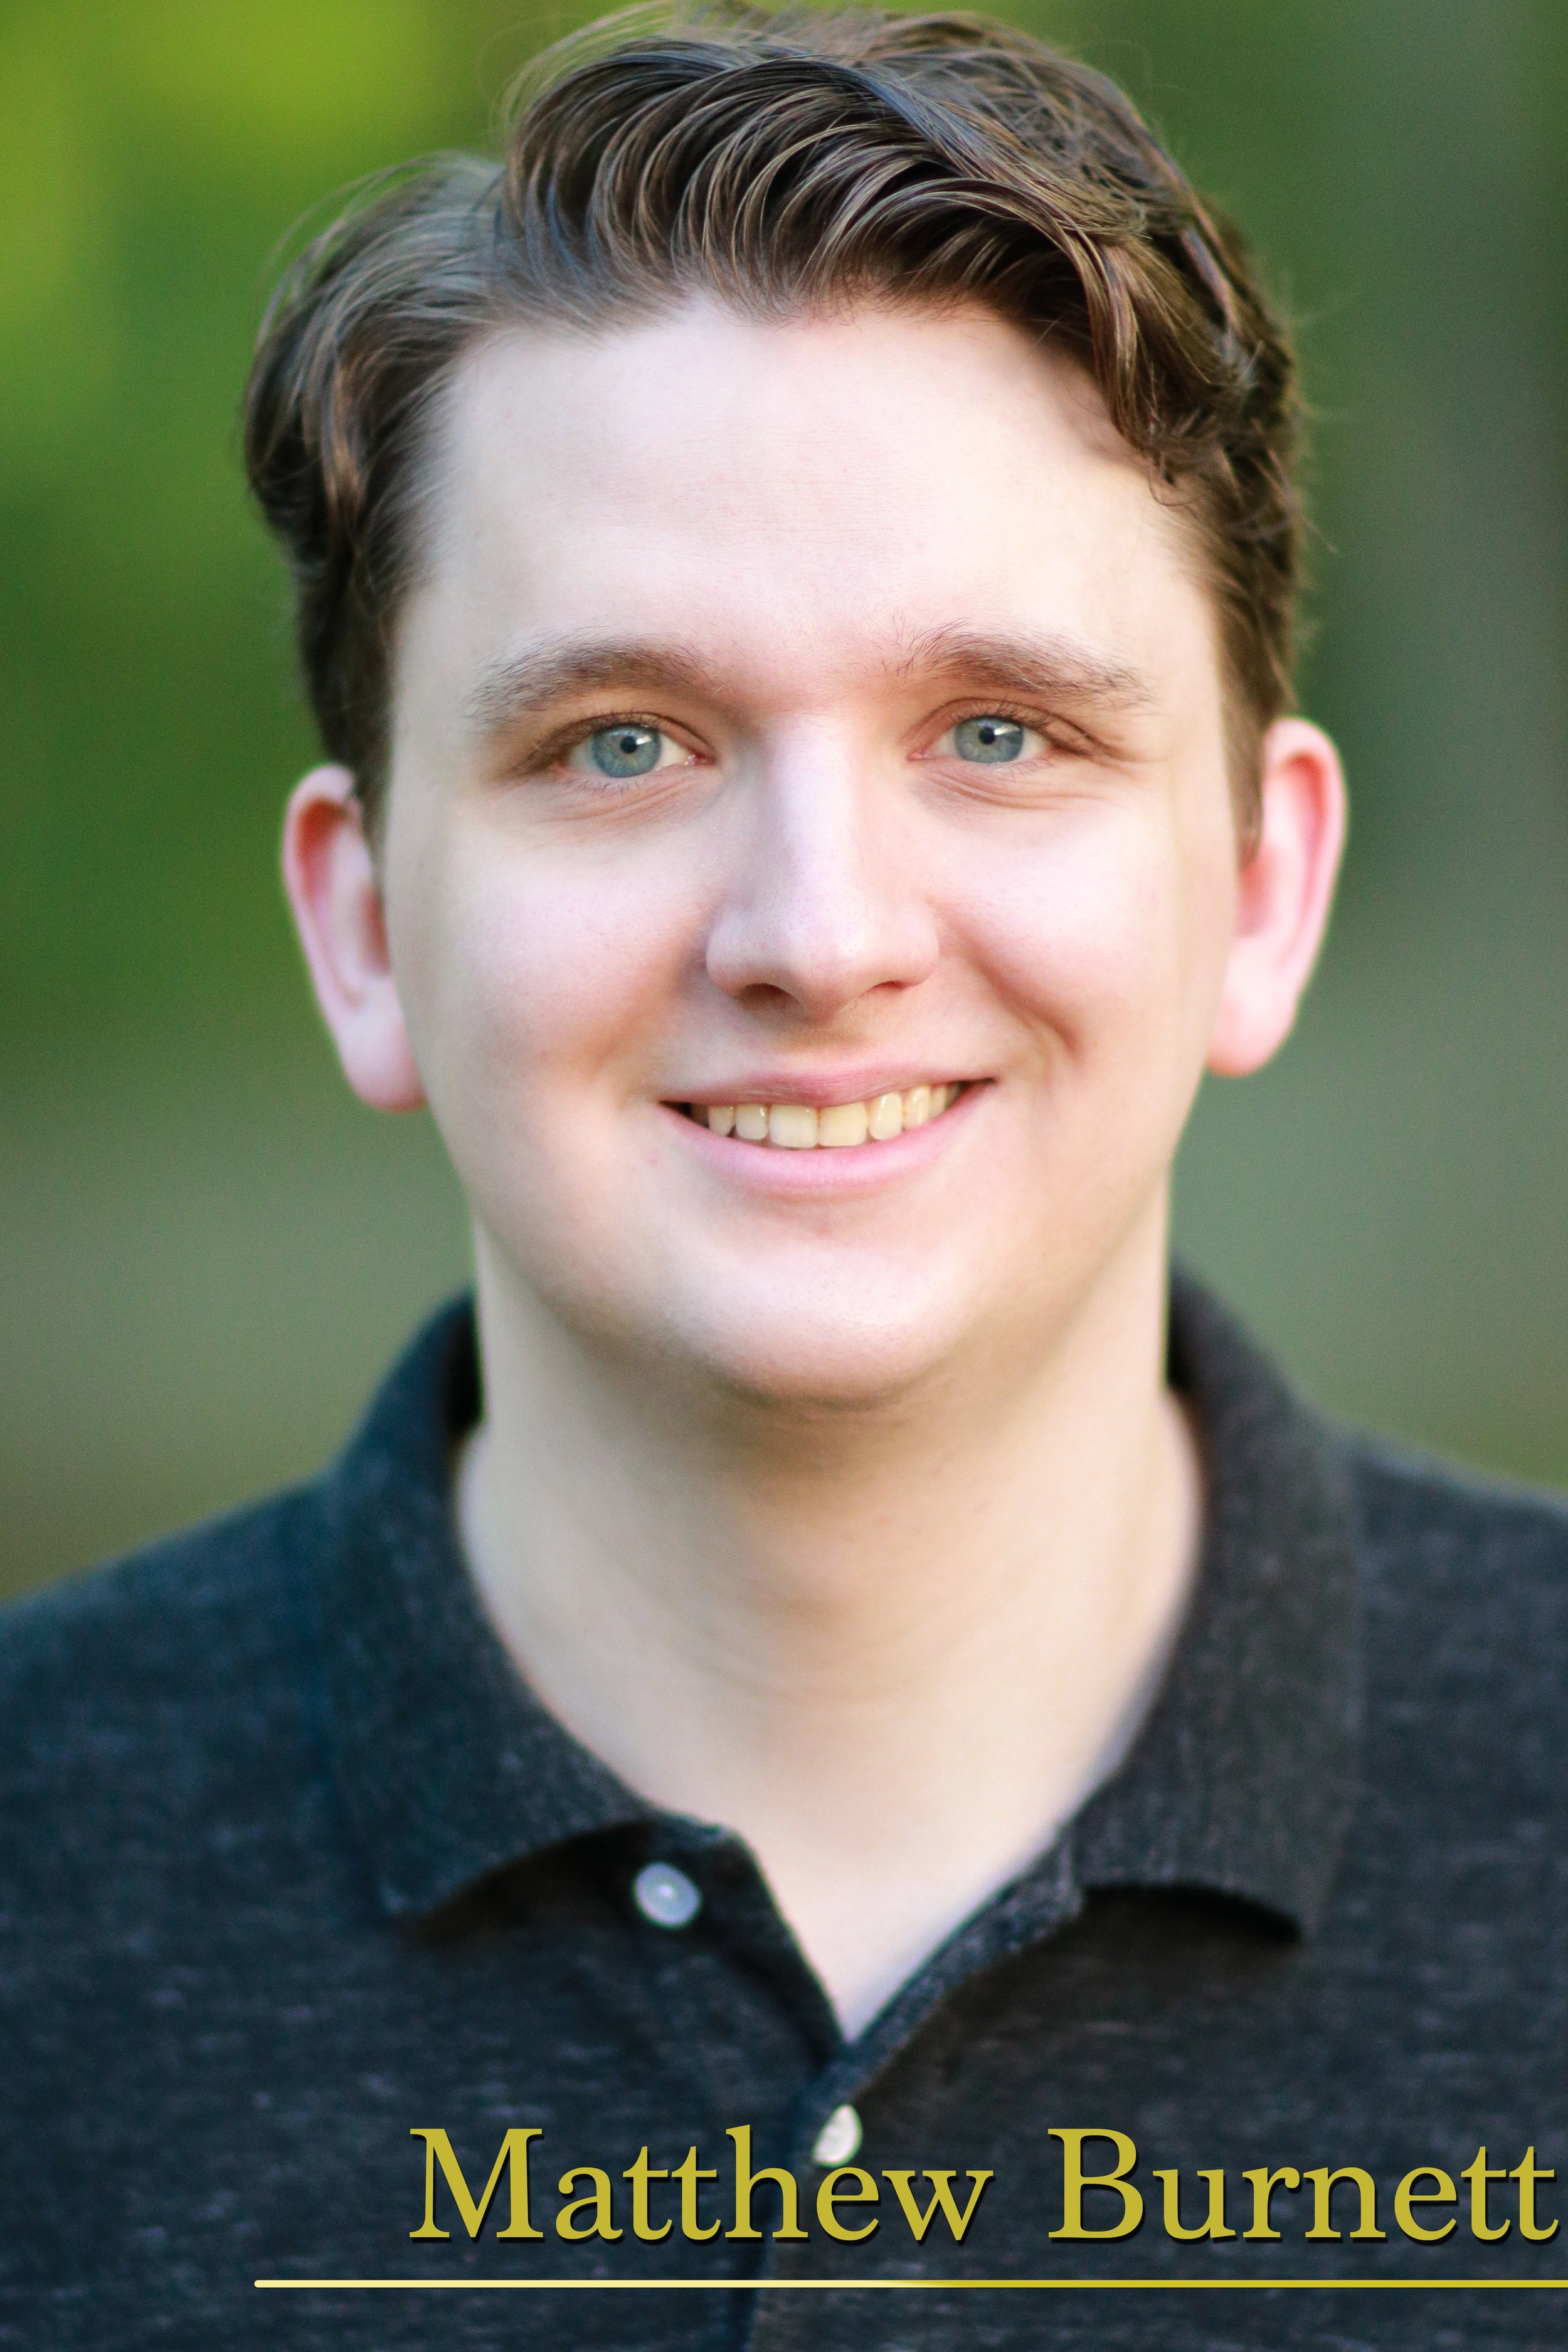 "Matthew Burnett is a graduate of Henderson State University, who received his BA in Theatre in 2017. Originally from Prattsville, AR, Matthew has performed with at several Theatre's in Little Rock and around the State. His favorite roles include ""Young Ebenezer"" in  Scrooge! The Musical  at Henderson, ""Curly"" in  Oklahoma!  at the Benton royal Theatre, and a understudy performance as ""The Scarecrow"" in  Wizard of OZ  at Murry's Dinner Playhouse. He joined the Fancyful team in November 2017. Matthew is a lifelong lover of storytelling and delights in bringing characters and fantastic tale to life, especially for children."